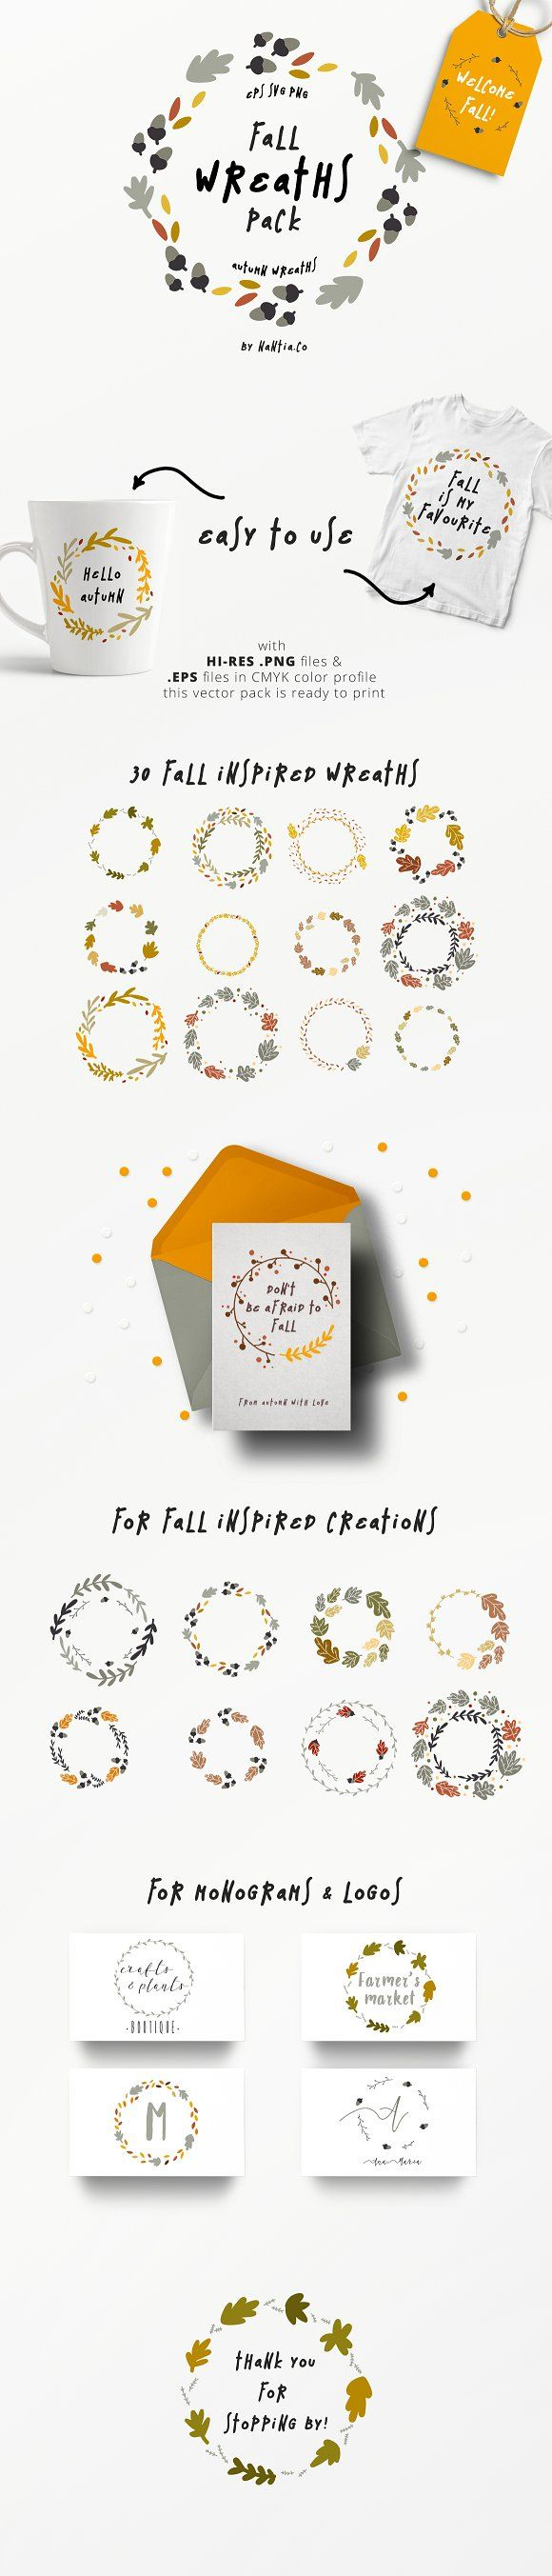 30 fall wreaths vector pack by nantia on creativemarket this pack 30 fall wreaths vector pack by nantia on this pack is the easiest way to create monograms logos to decorate invitations cards or mugs stopboris Images